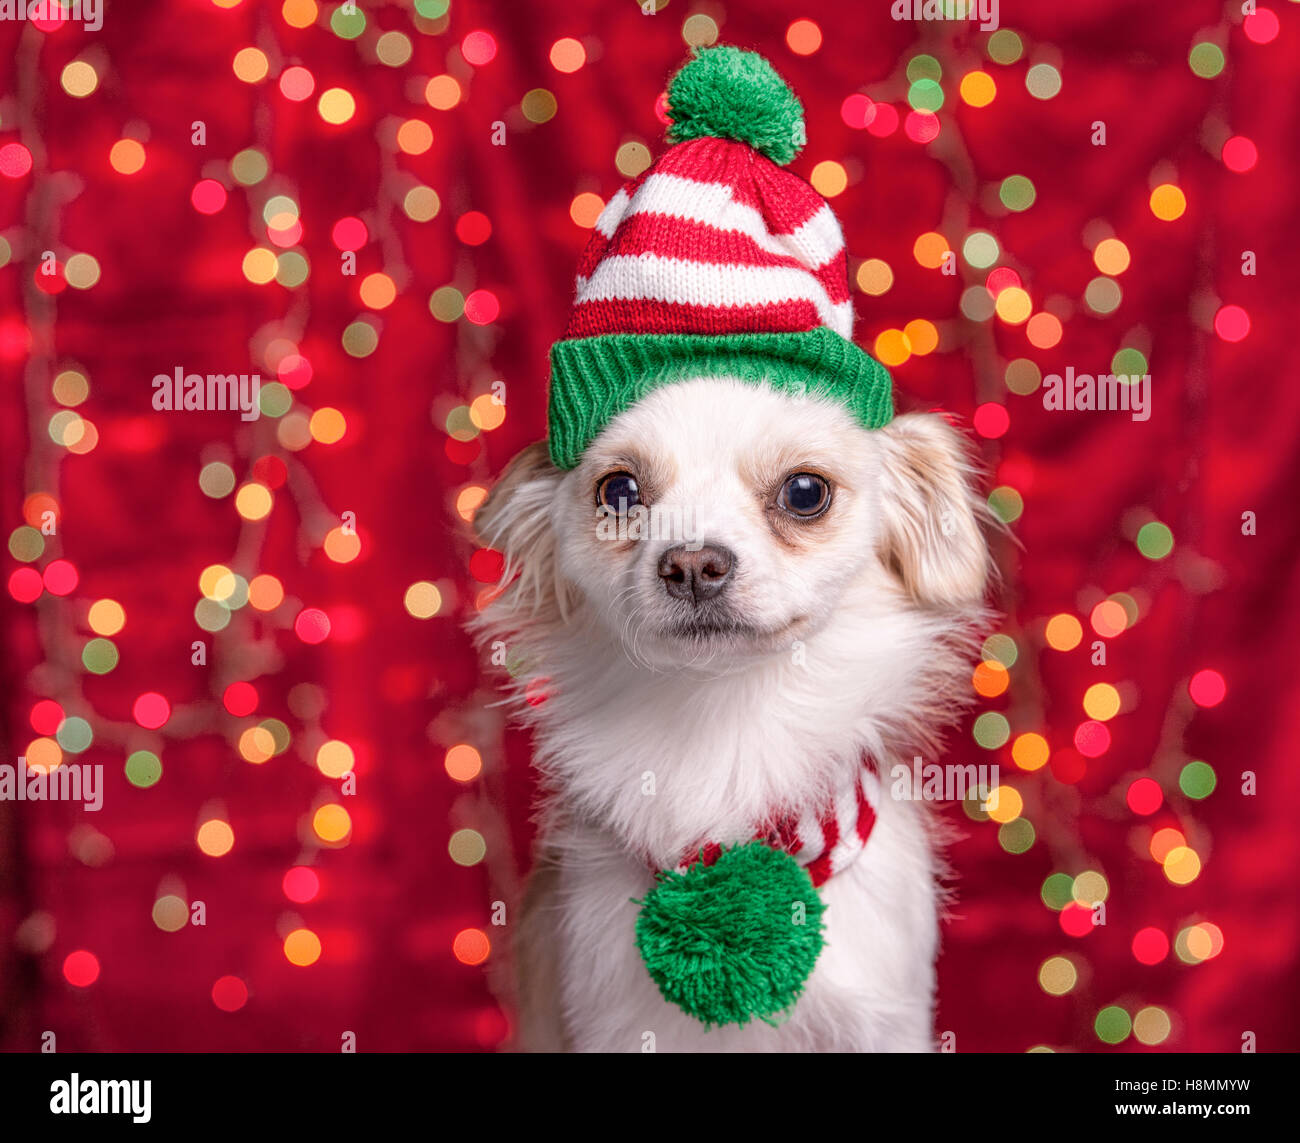 A small chihuahua/terrier mix wears a christmas cap and scarf with lights in the background. - Stock Image